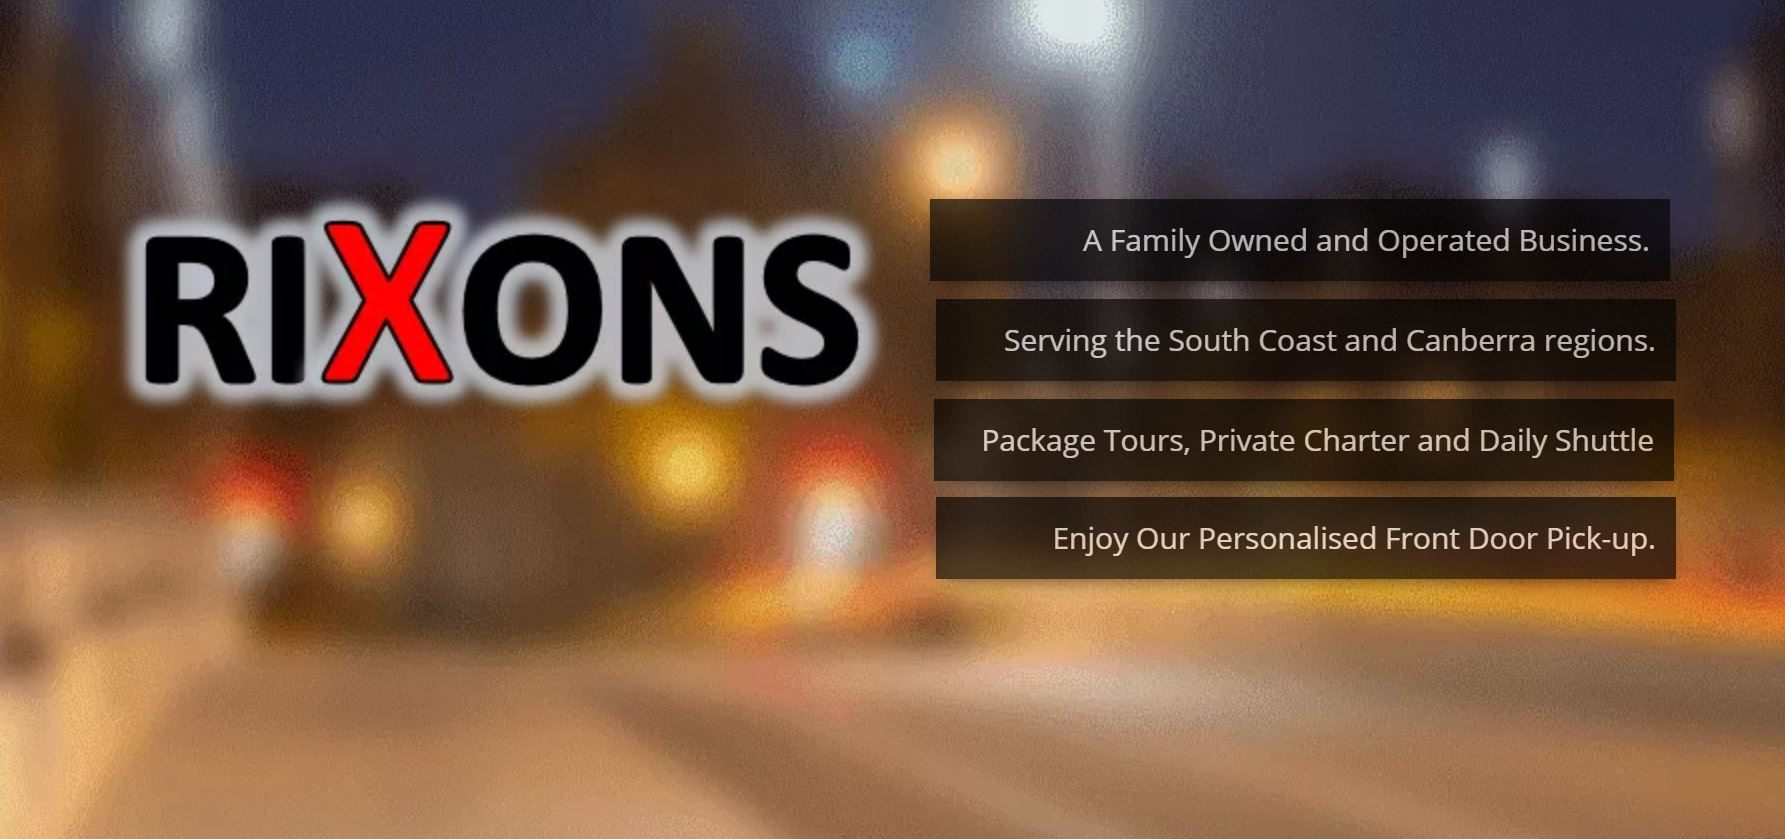 Canberra to South Coast Shuttle, Package Tours, Private Bus